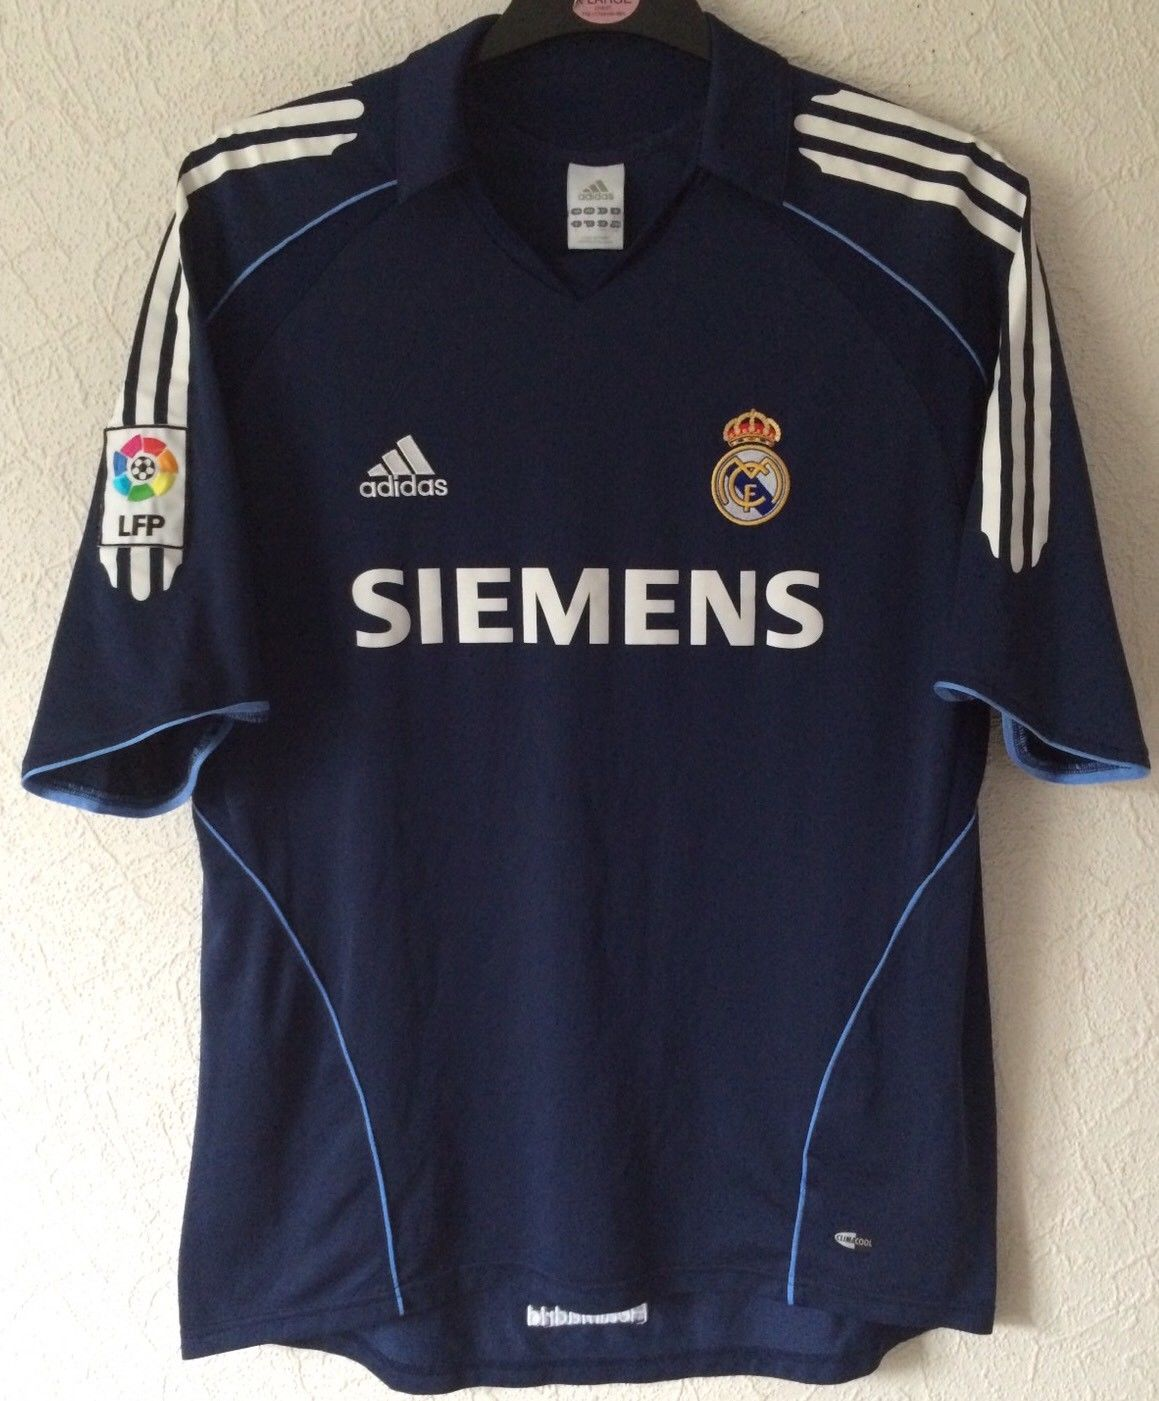 a9a75946828 Real Madrid Football Shirt 2005 06 Adults Large Adidas – Historic ...